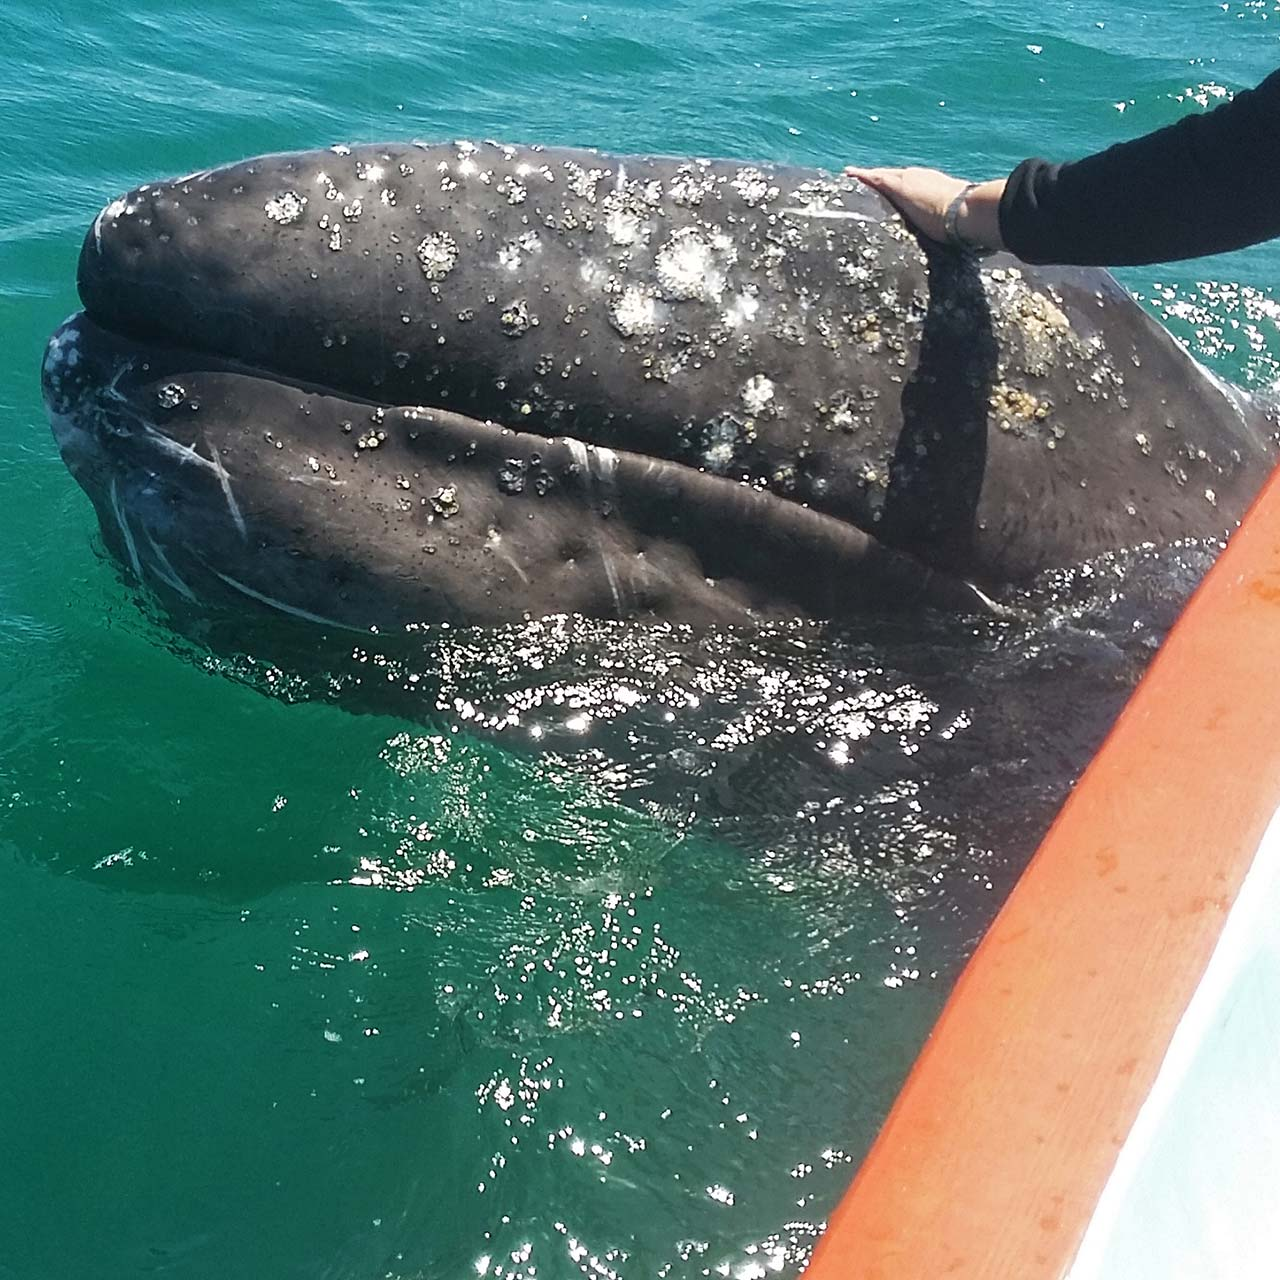 Petting a baby gray whale over the side of a small boat.